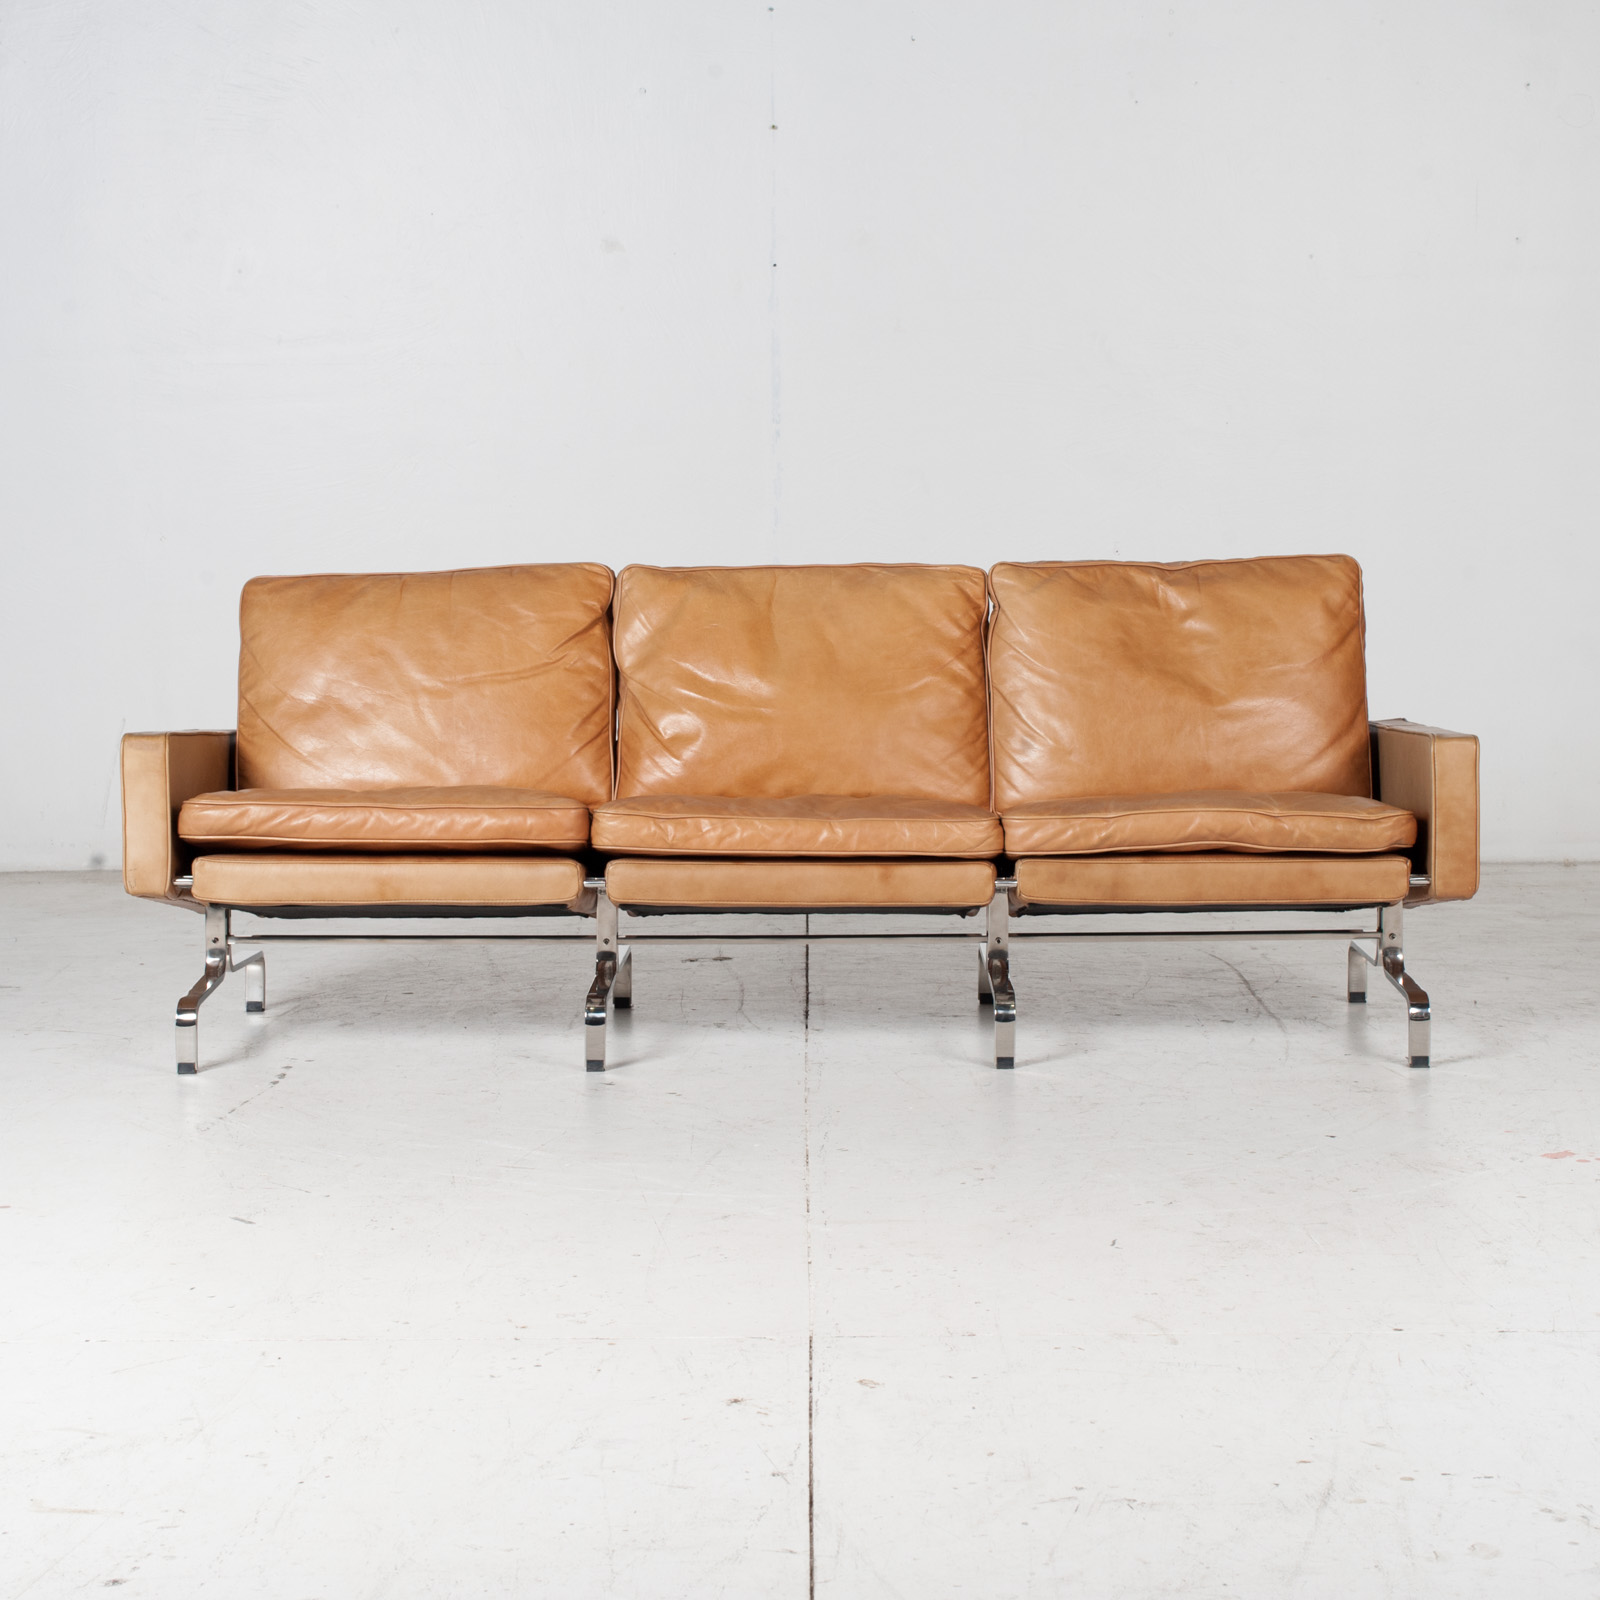 3 Seat Sofa By Poul Kjaerholm For Ejvind Kold Christensen In Tan Leather And Chrome, 1960s, Denmark 1